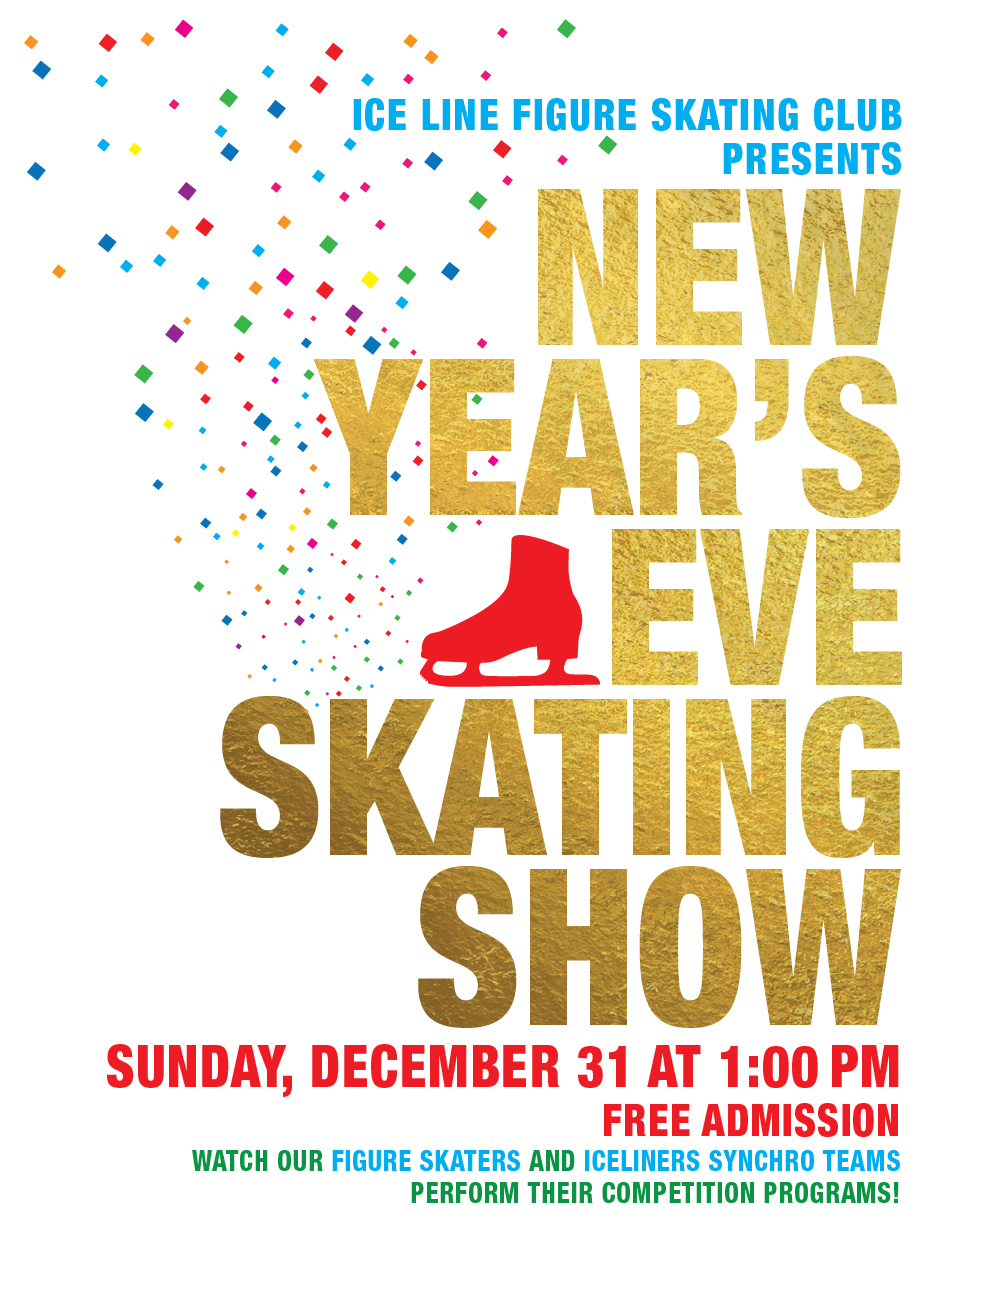 New Year's Eve Figure Skating Show at Ice Line Figure Skating Club